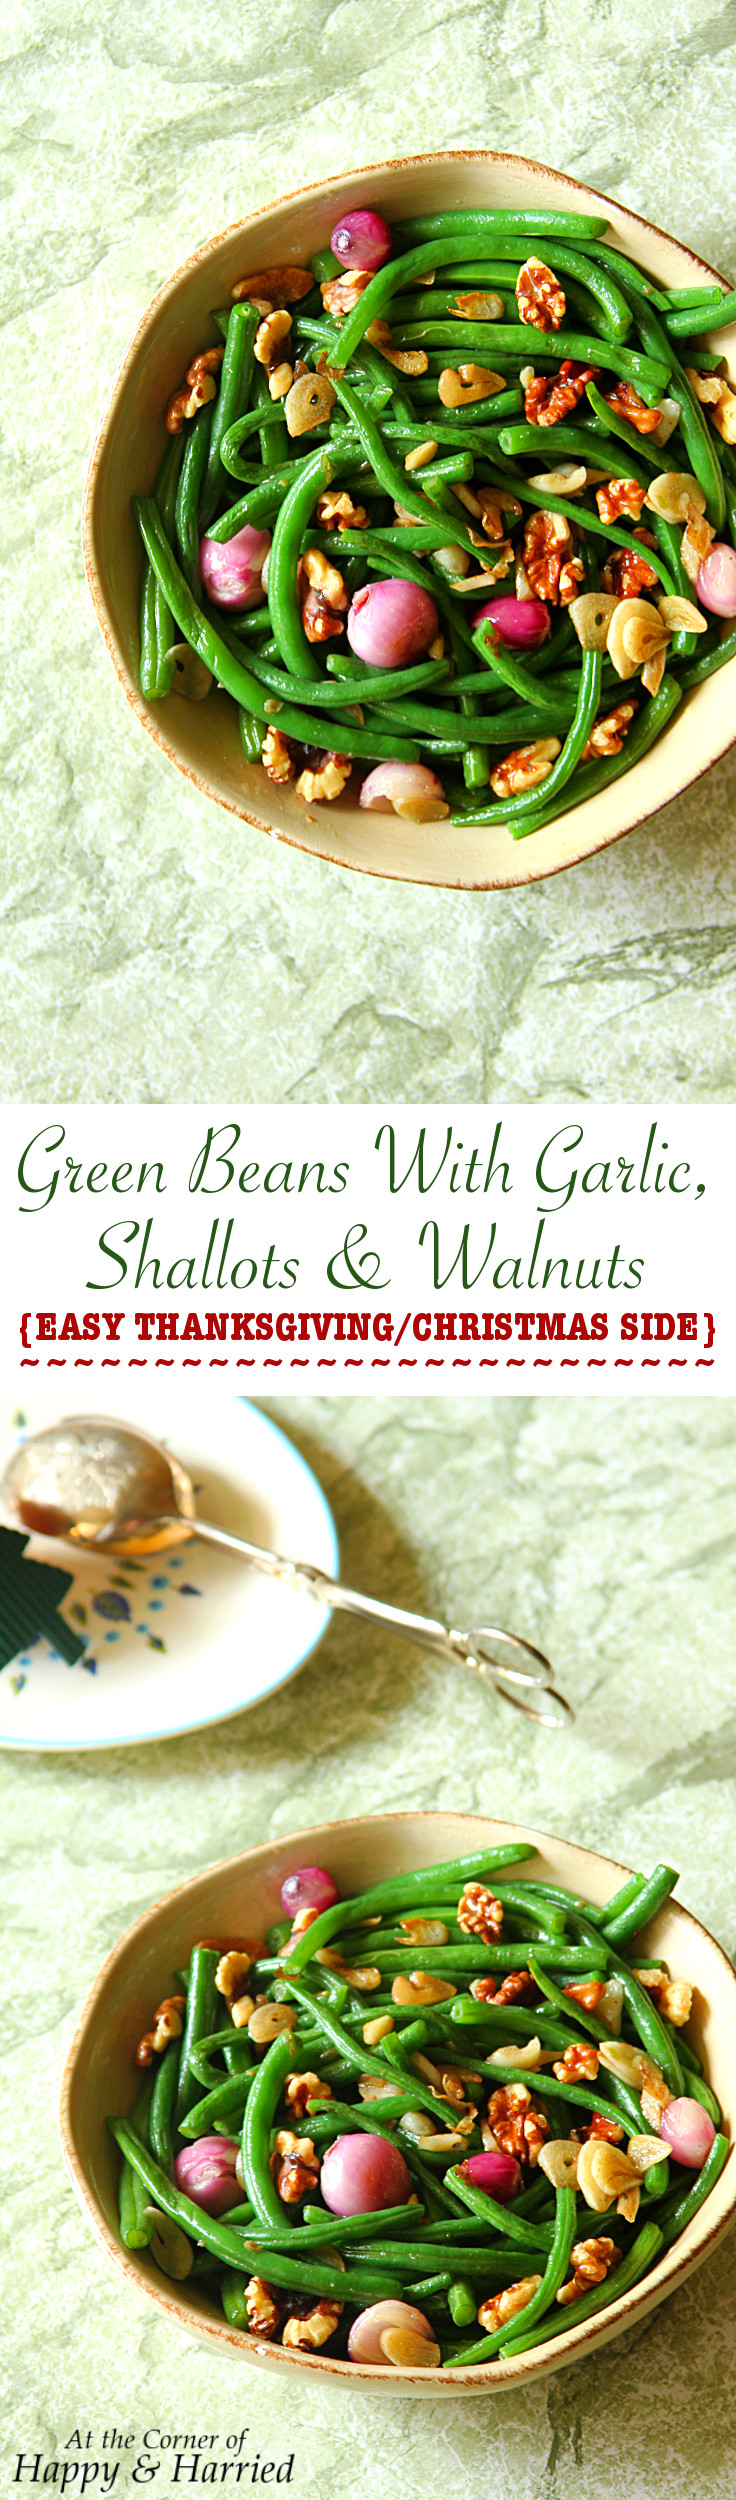 Green Beans With Garlic, Shallots & Walnuts